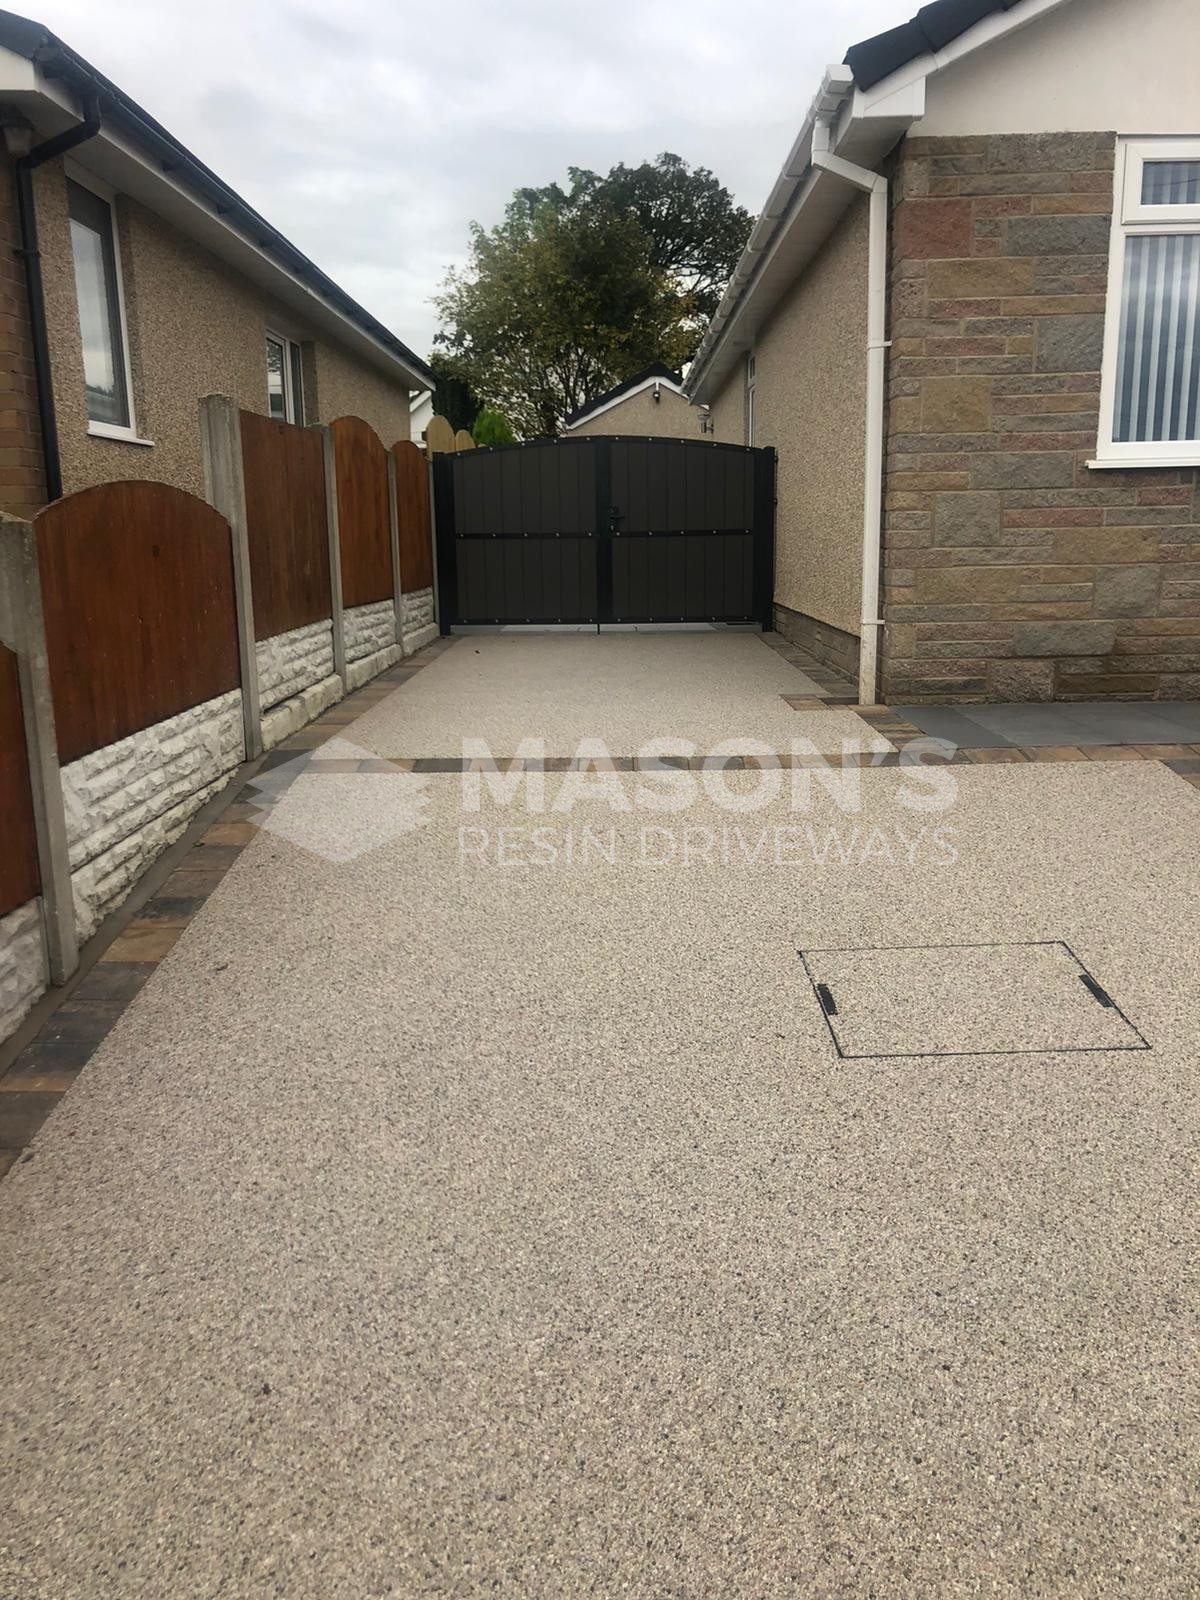 Resin Bound Driveway Pearl Quartz leading to back garden in Morecambe, Lancashire